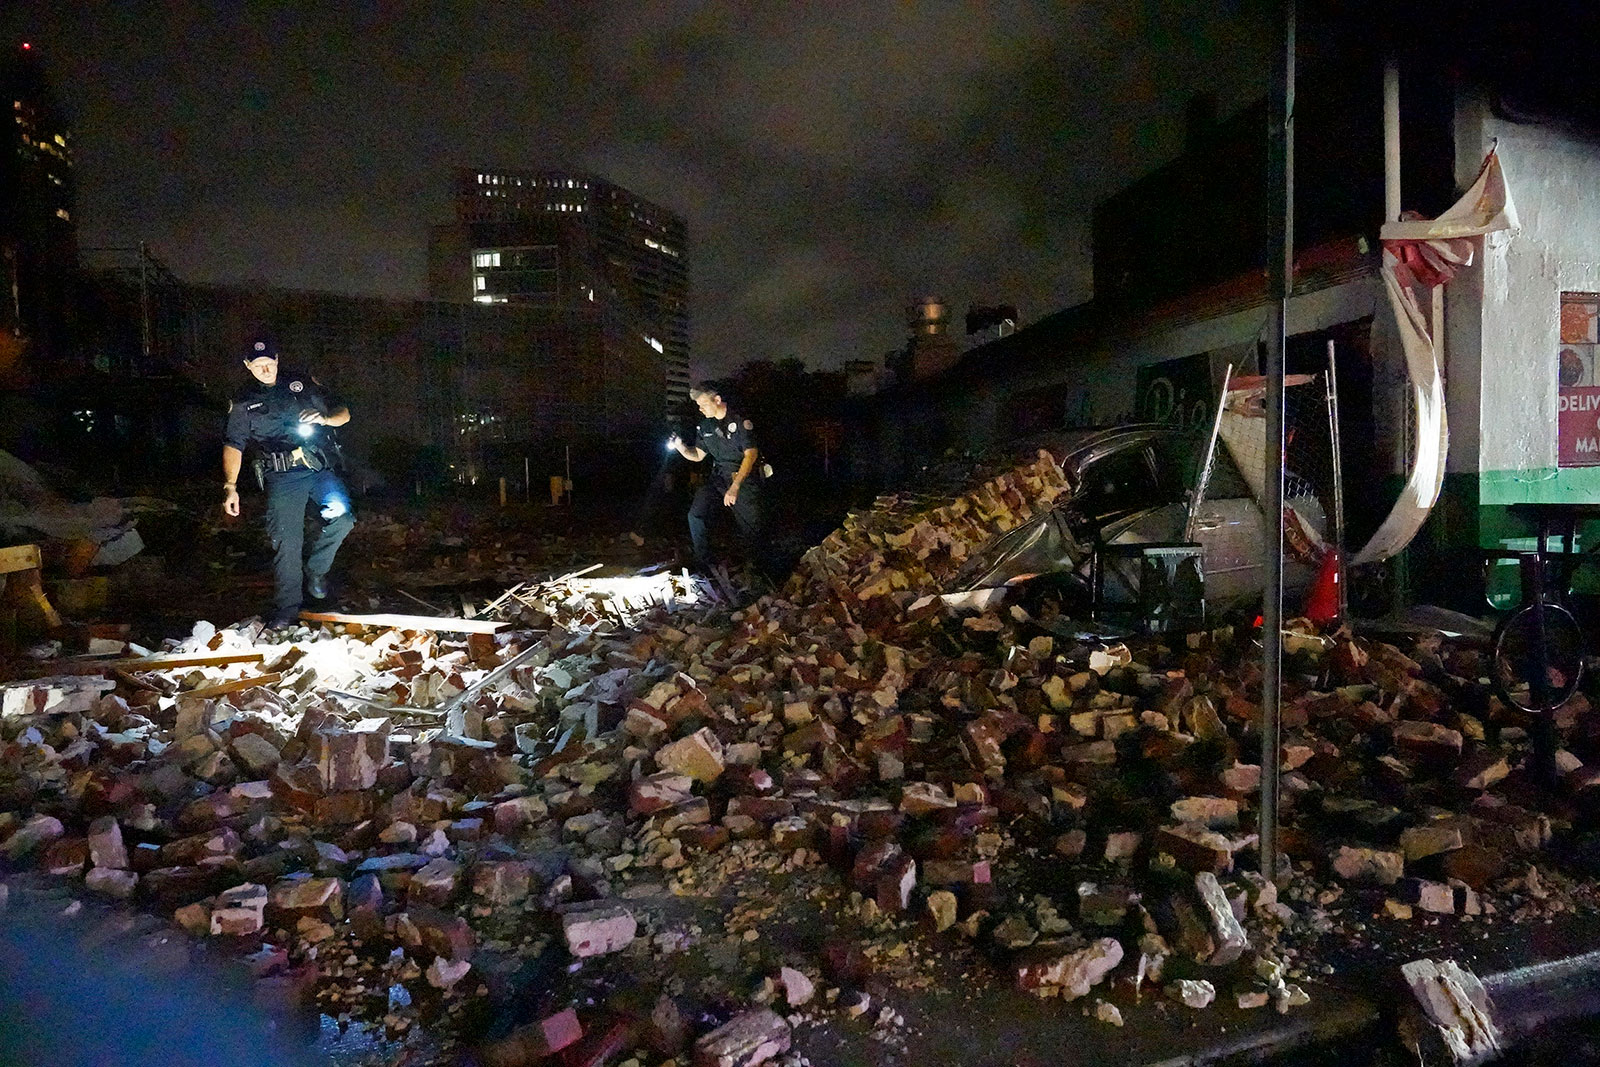 New Orleans Police detectives Adam Buckner, left, and Alexander Reiter, look through debris from a collapsed building in New Orleans on August 30.